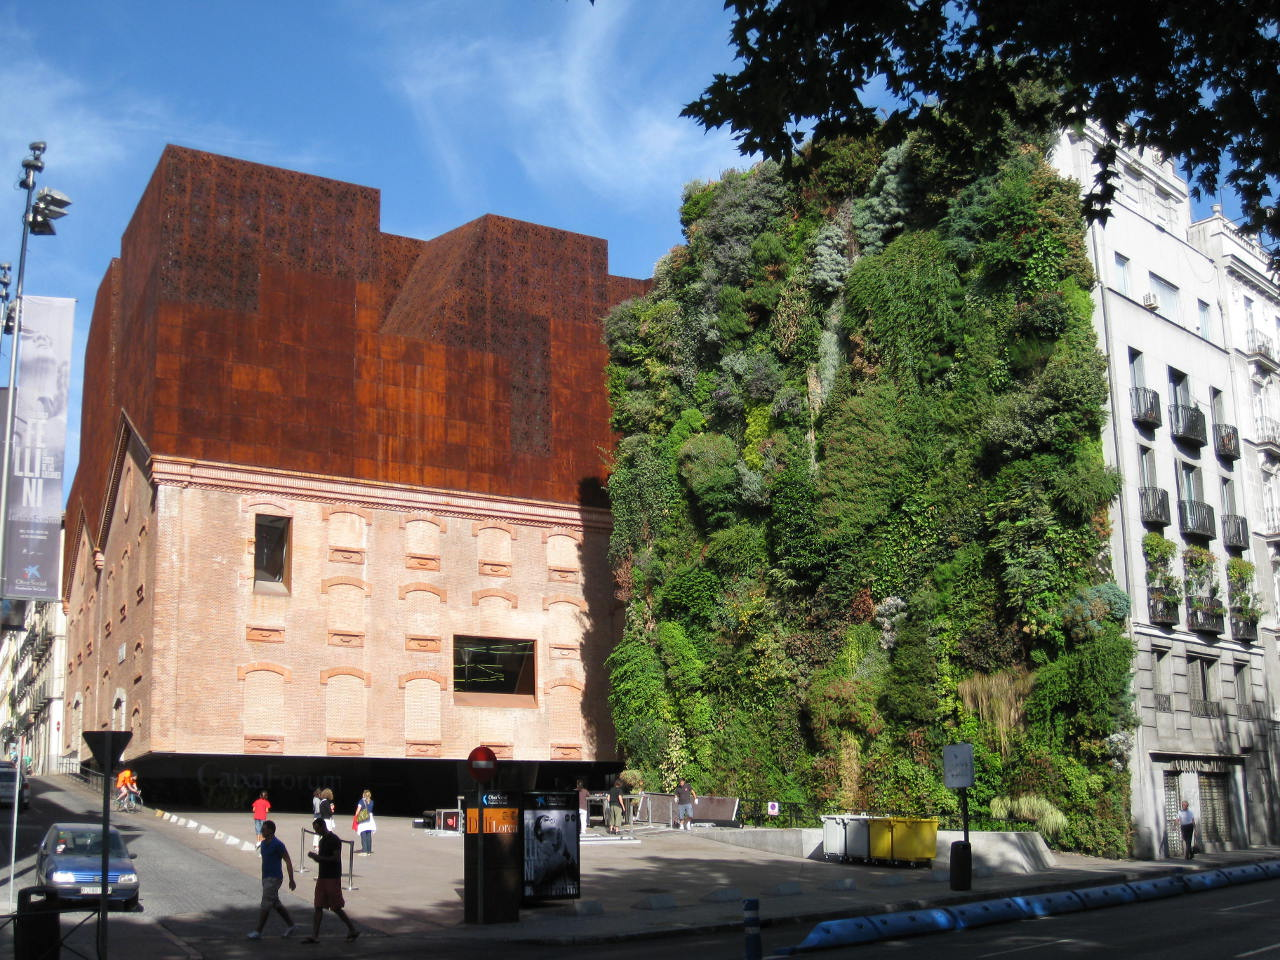 Patrick Blanc's Vertical Garden and Caixa Forum in Madrid, Spain